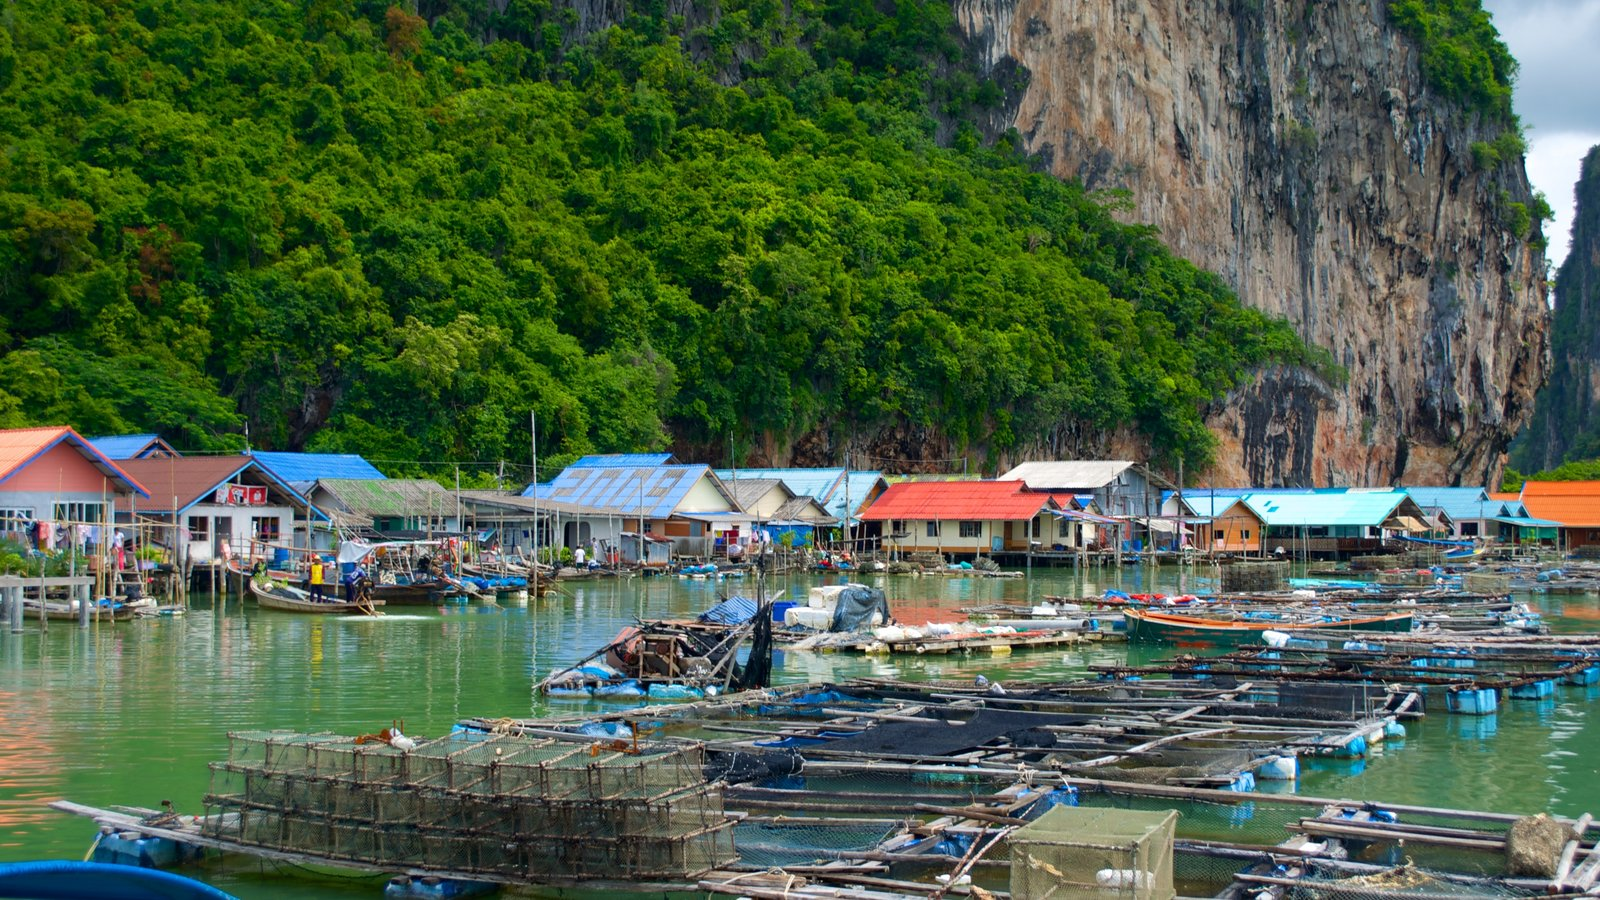 Phang Nga featuring general coastal views, a bay or harbor and a coastal town